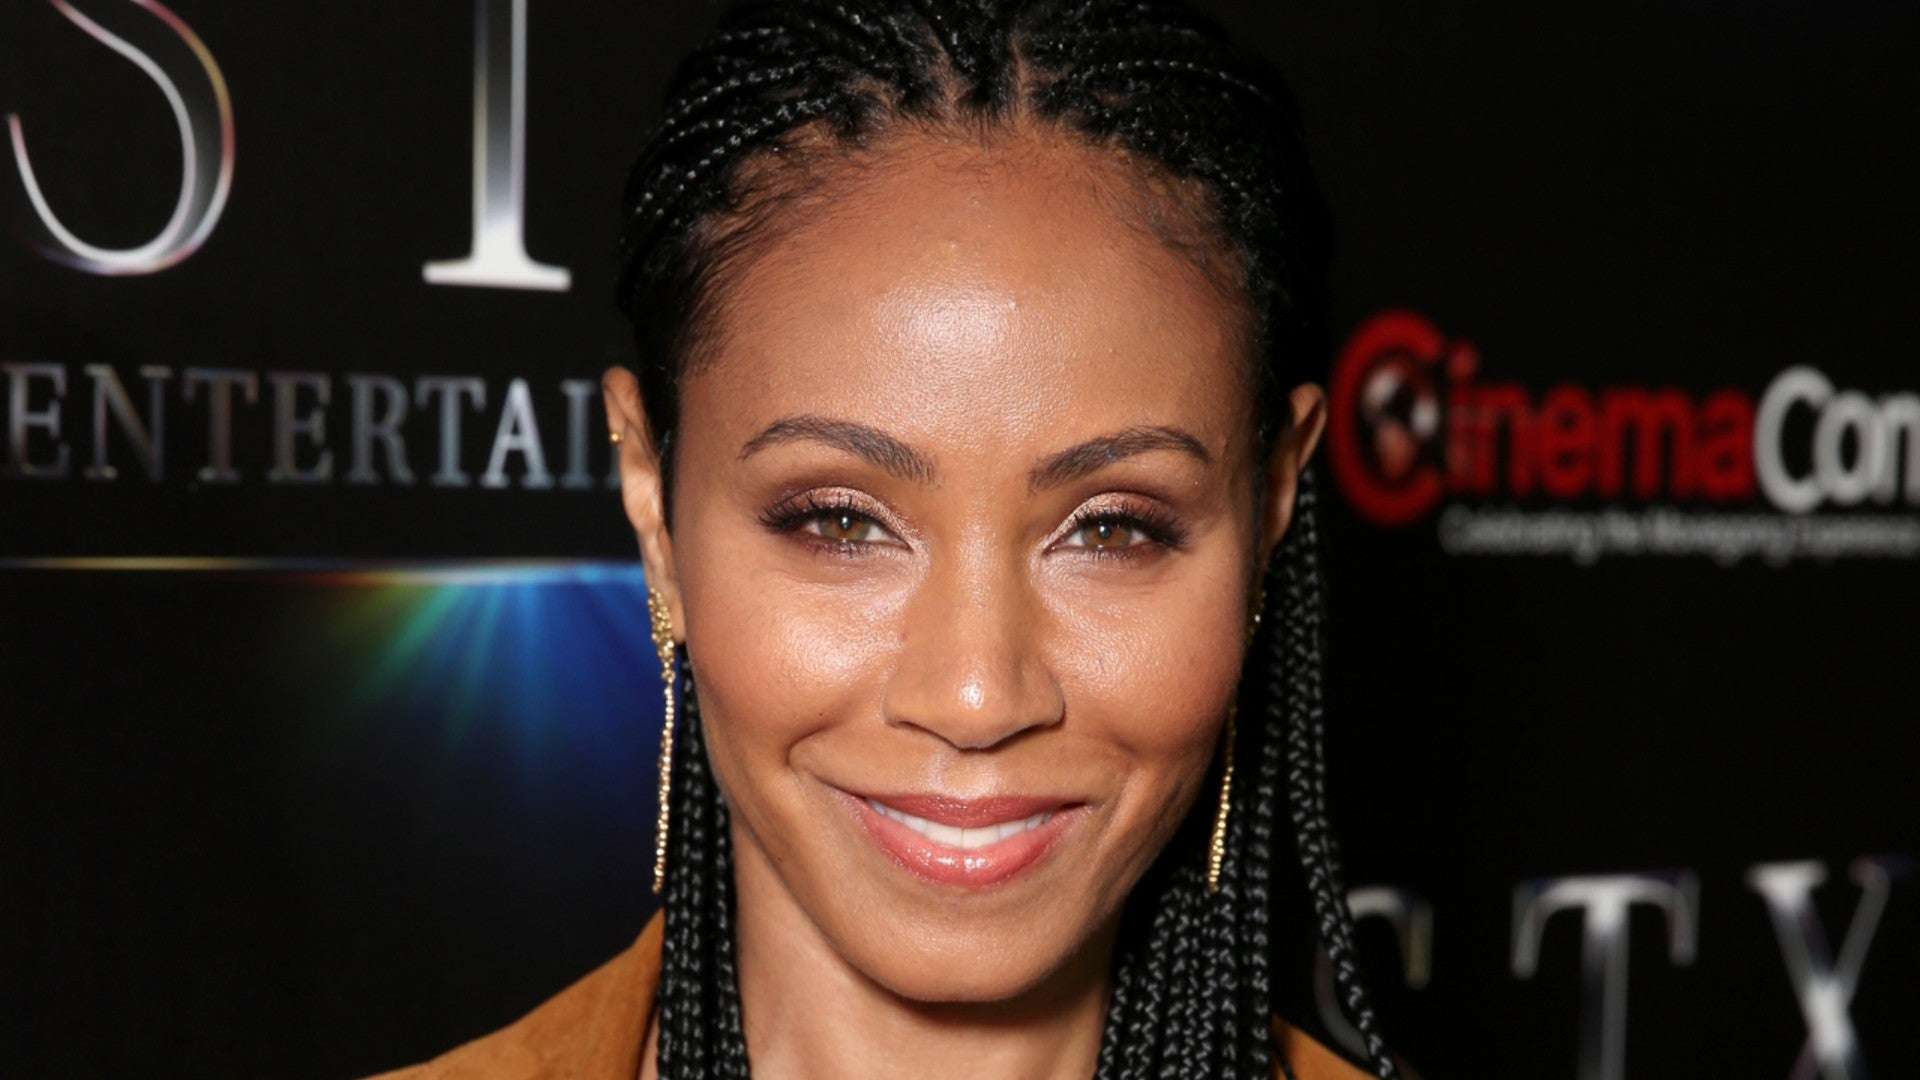 Jada Pinkett Smith's Best Braided Looks